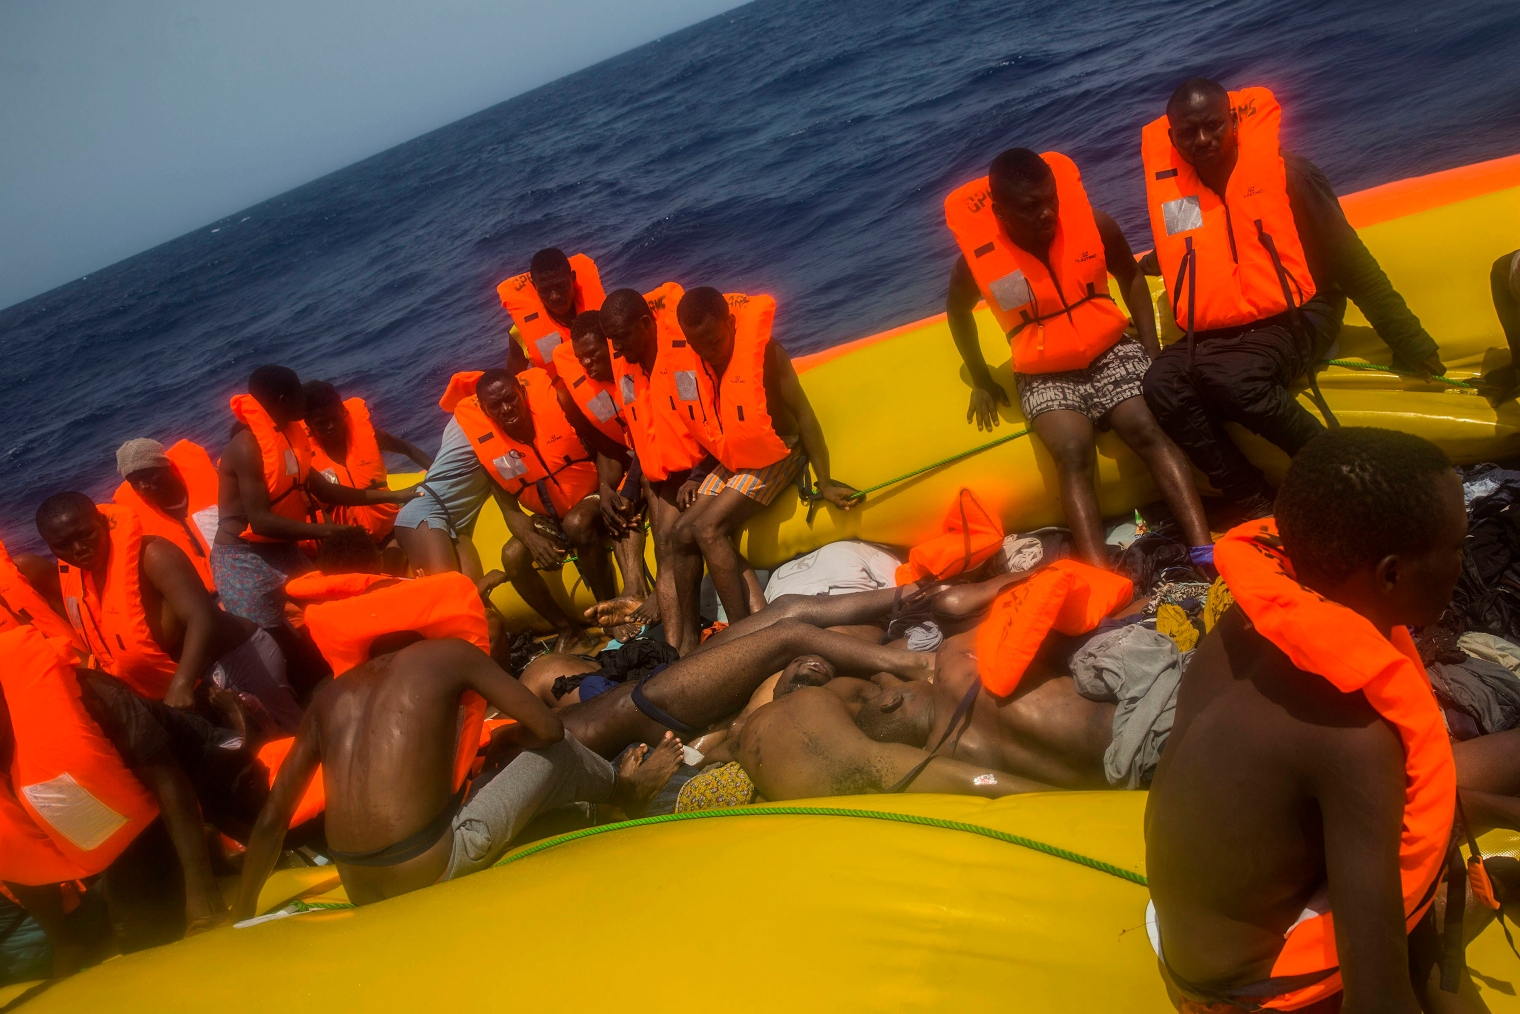 Migrants waiting to be rescued sit on the edge of the rubber boat, around a pile of bodies.